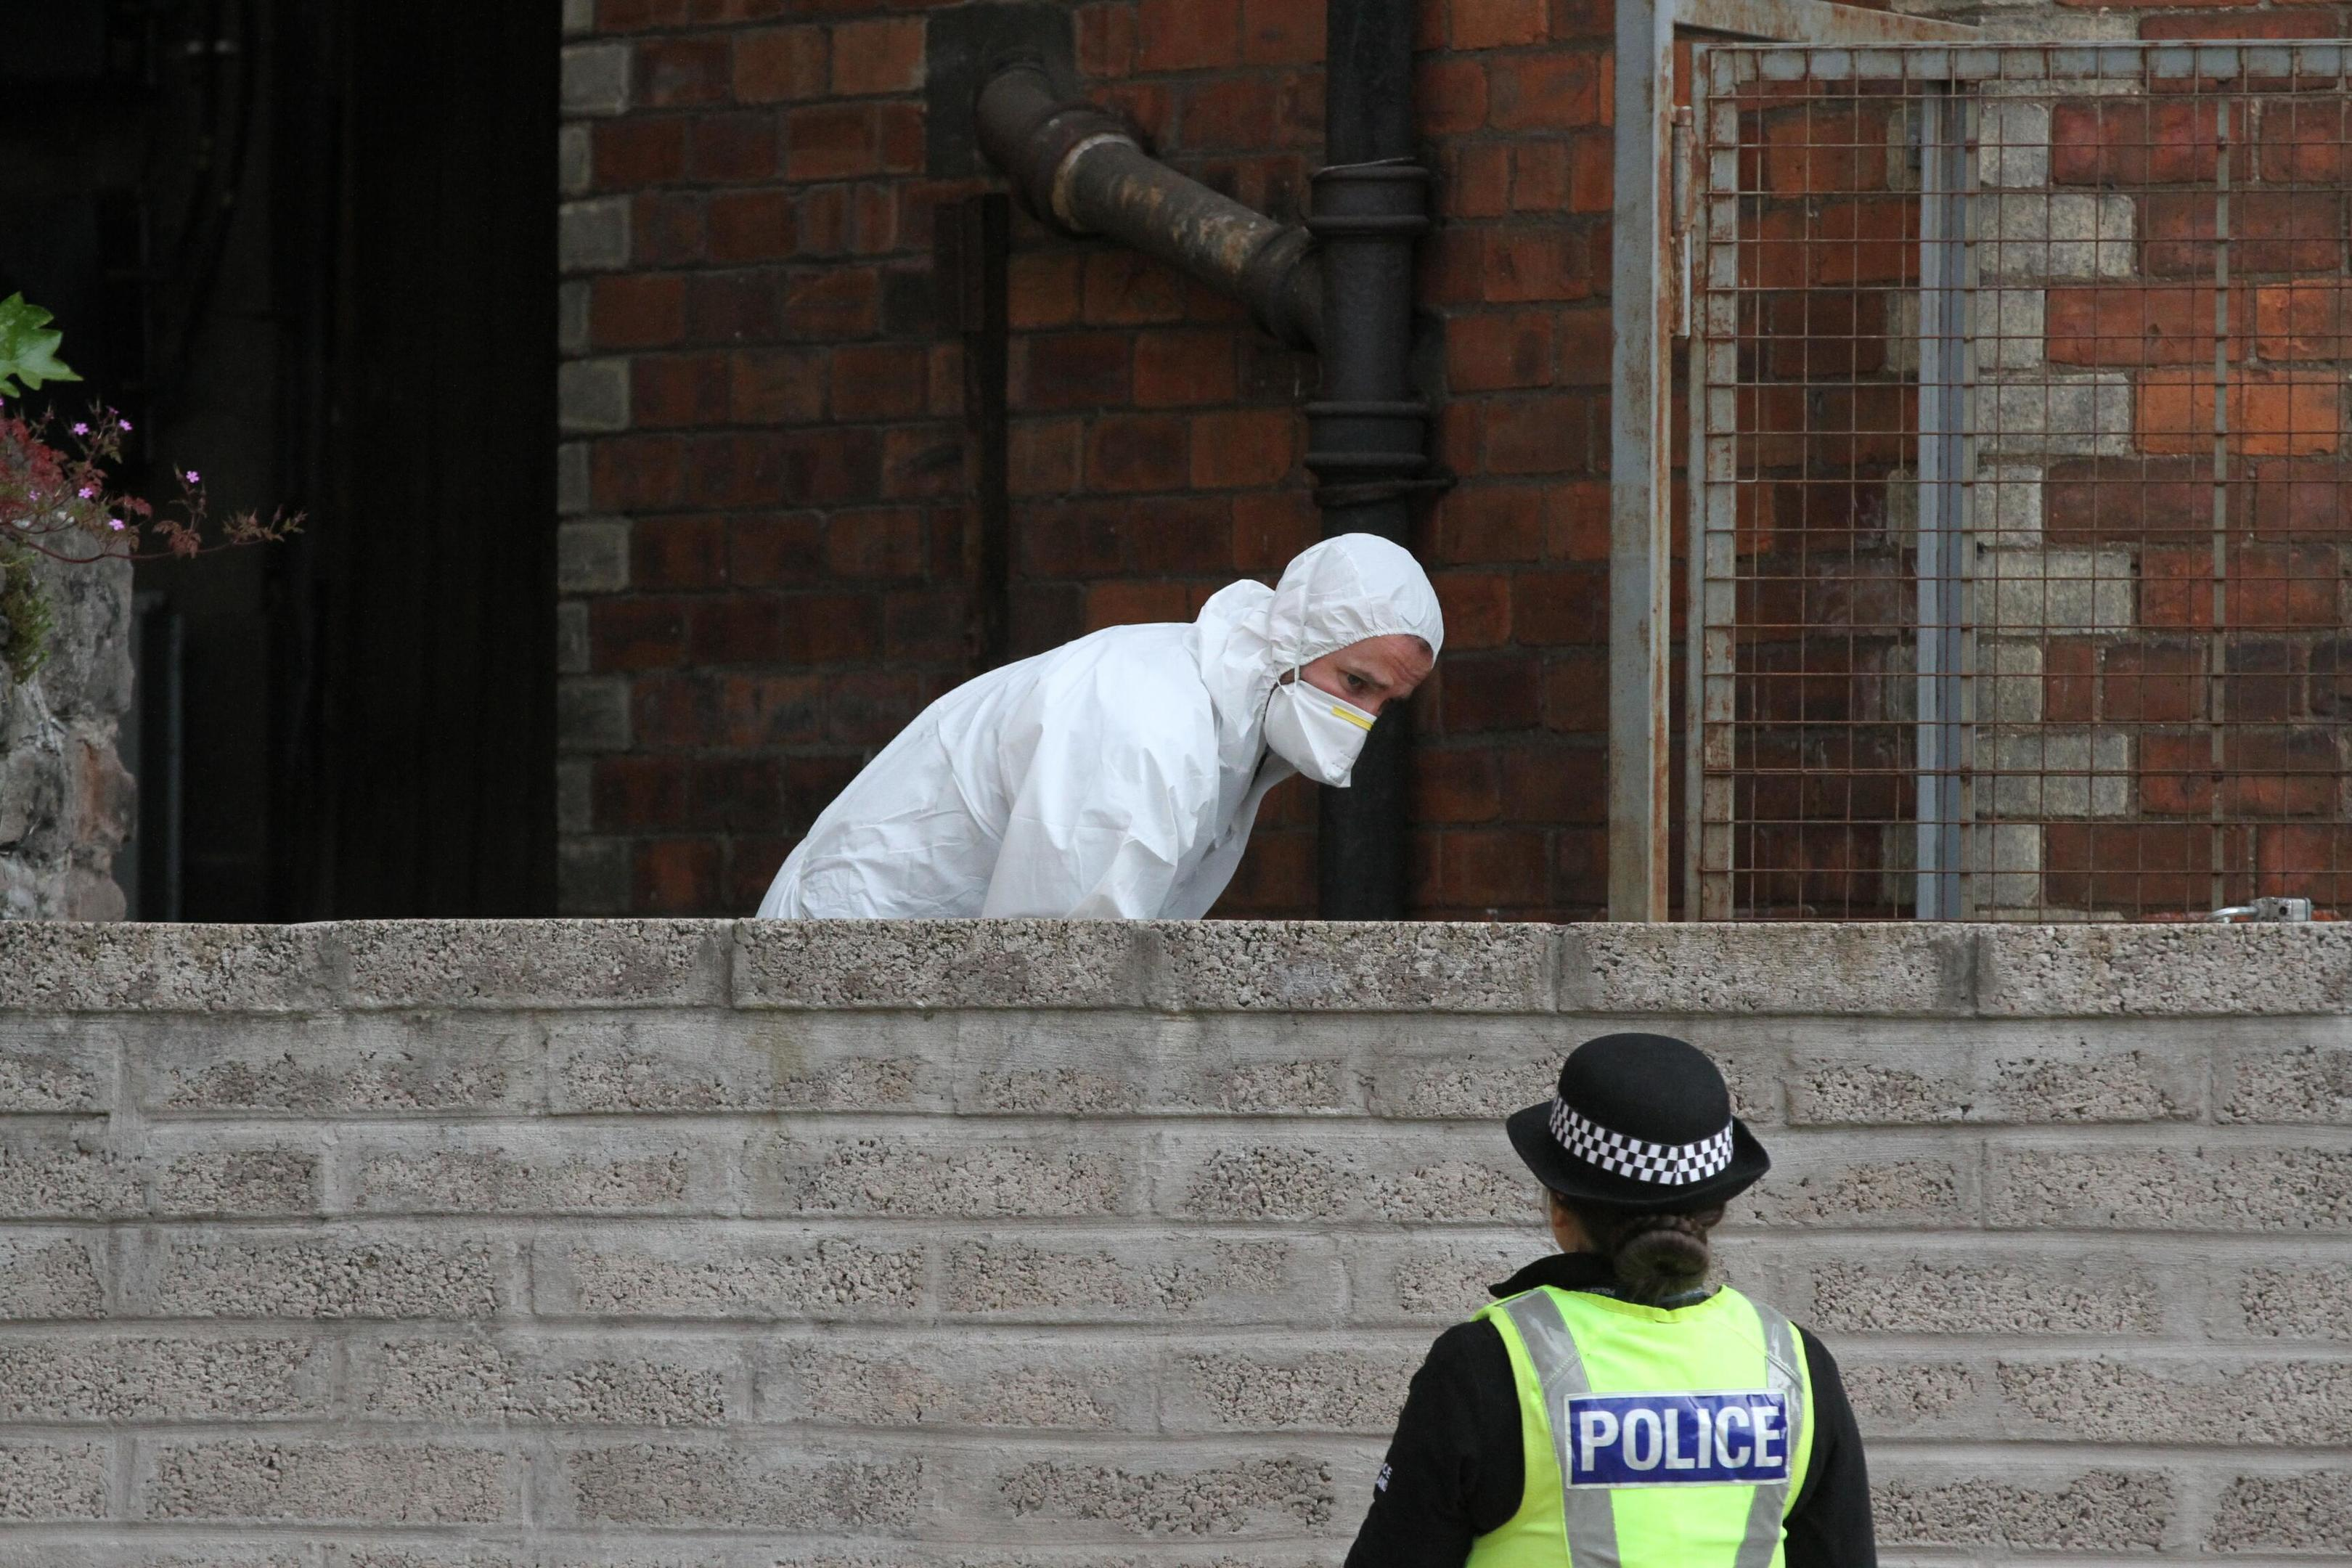 The body was found in the Nethergate on Thursday  night.